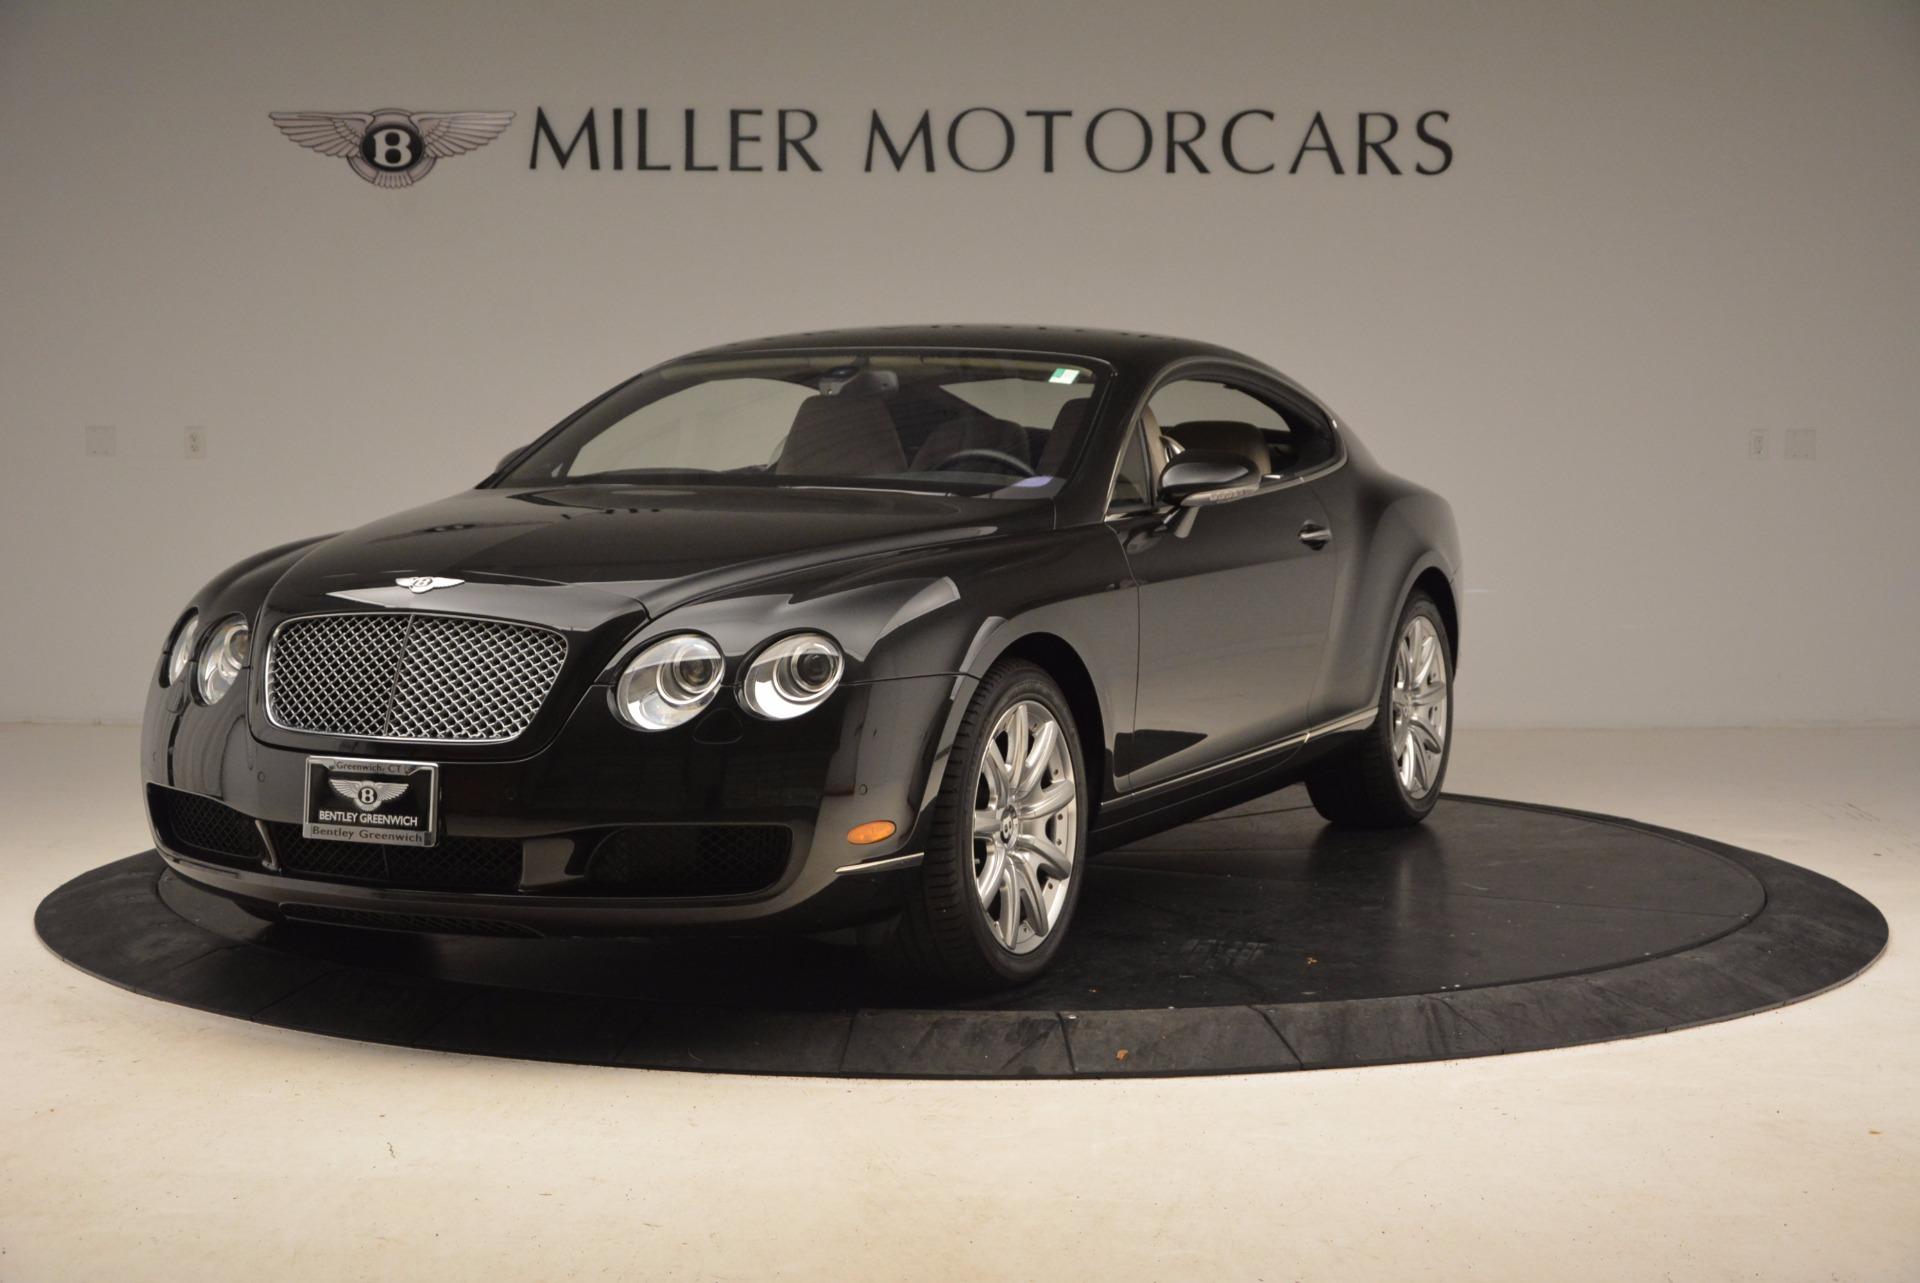 Used 2005 Bentley Continental GT W12 for sale Sold at McLaren Greenwich in Greenwich CT 06830 1